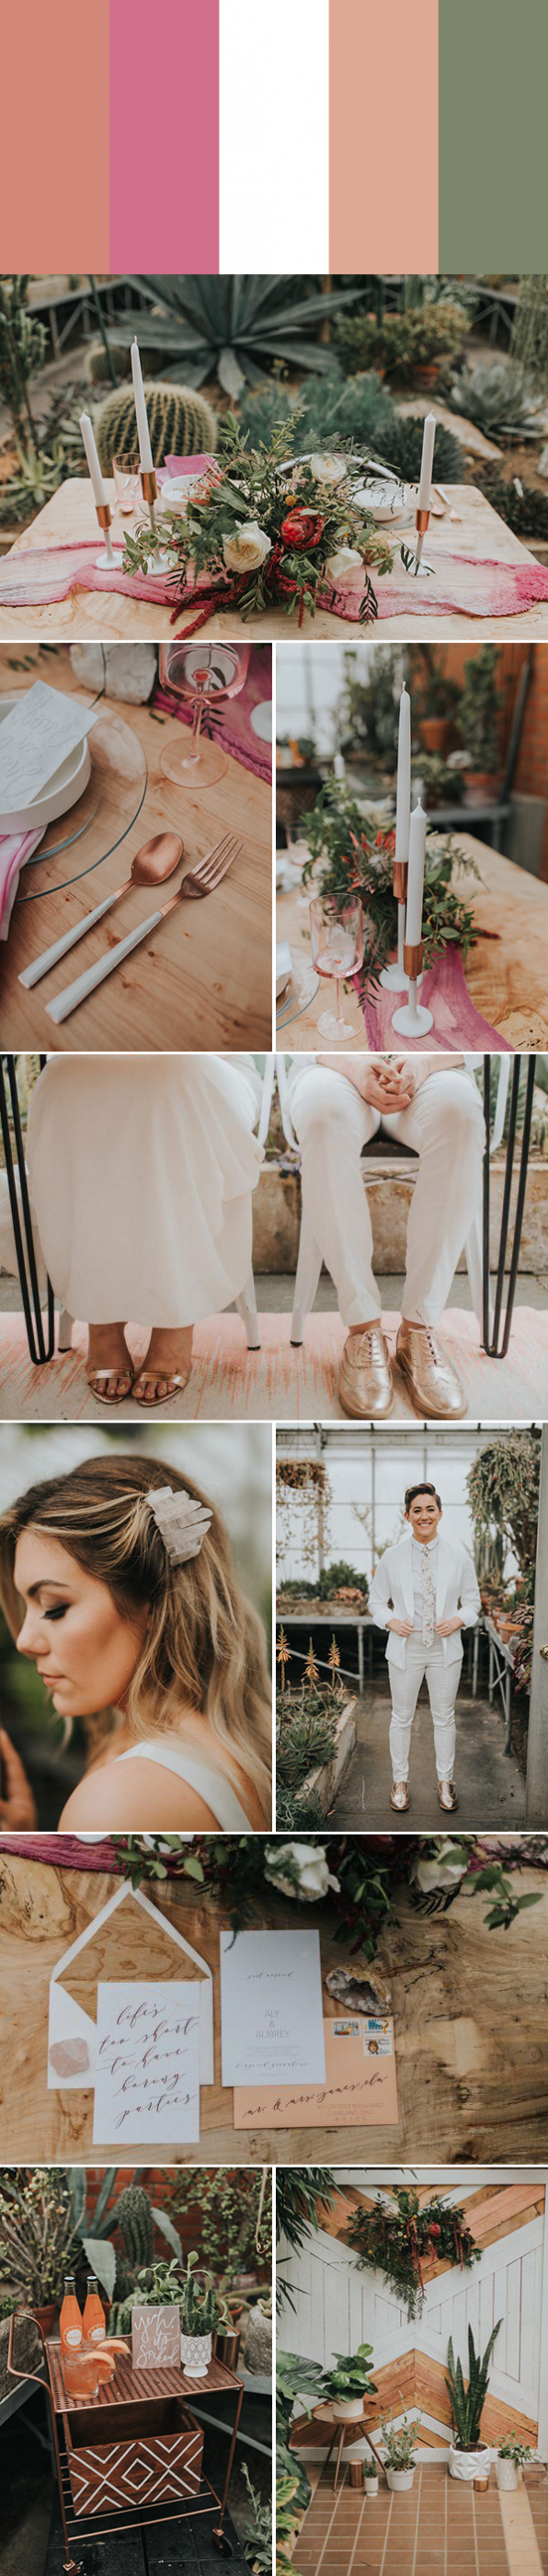 6 Metallic Wedding Color Palettes That Dazzle and Shine ...